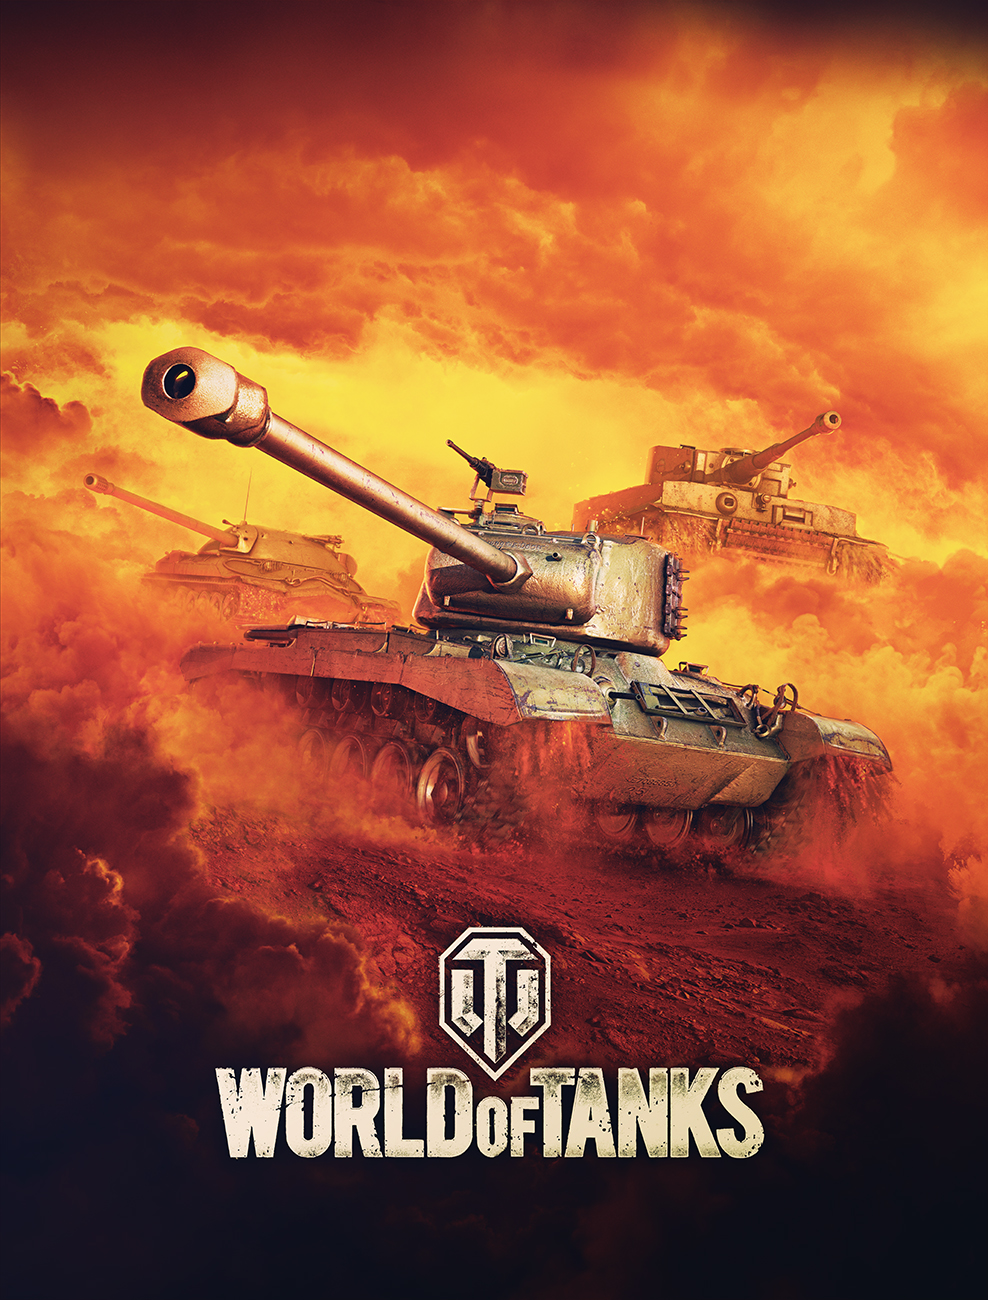 Xbox World of Tanks Key Art